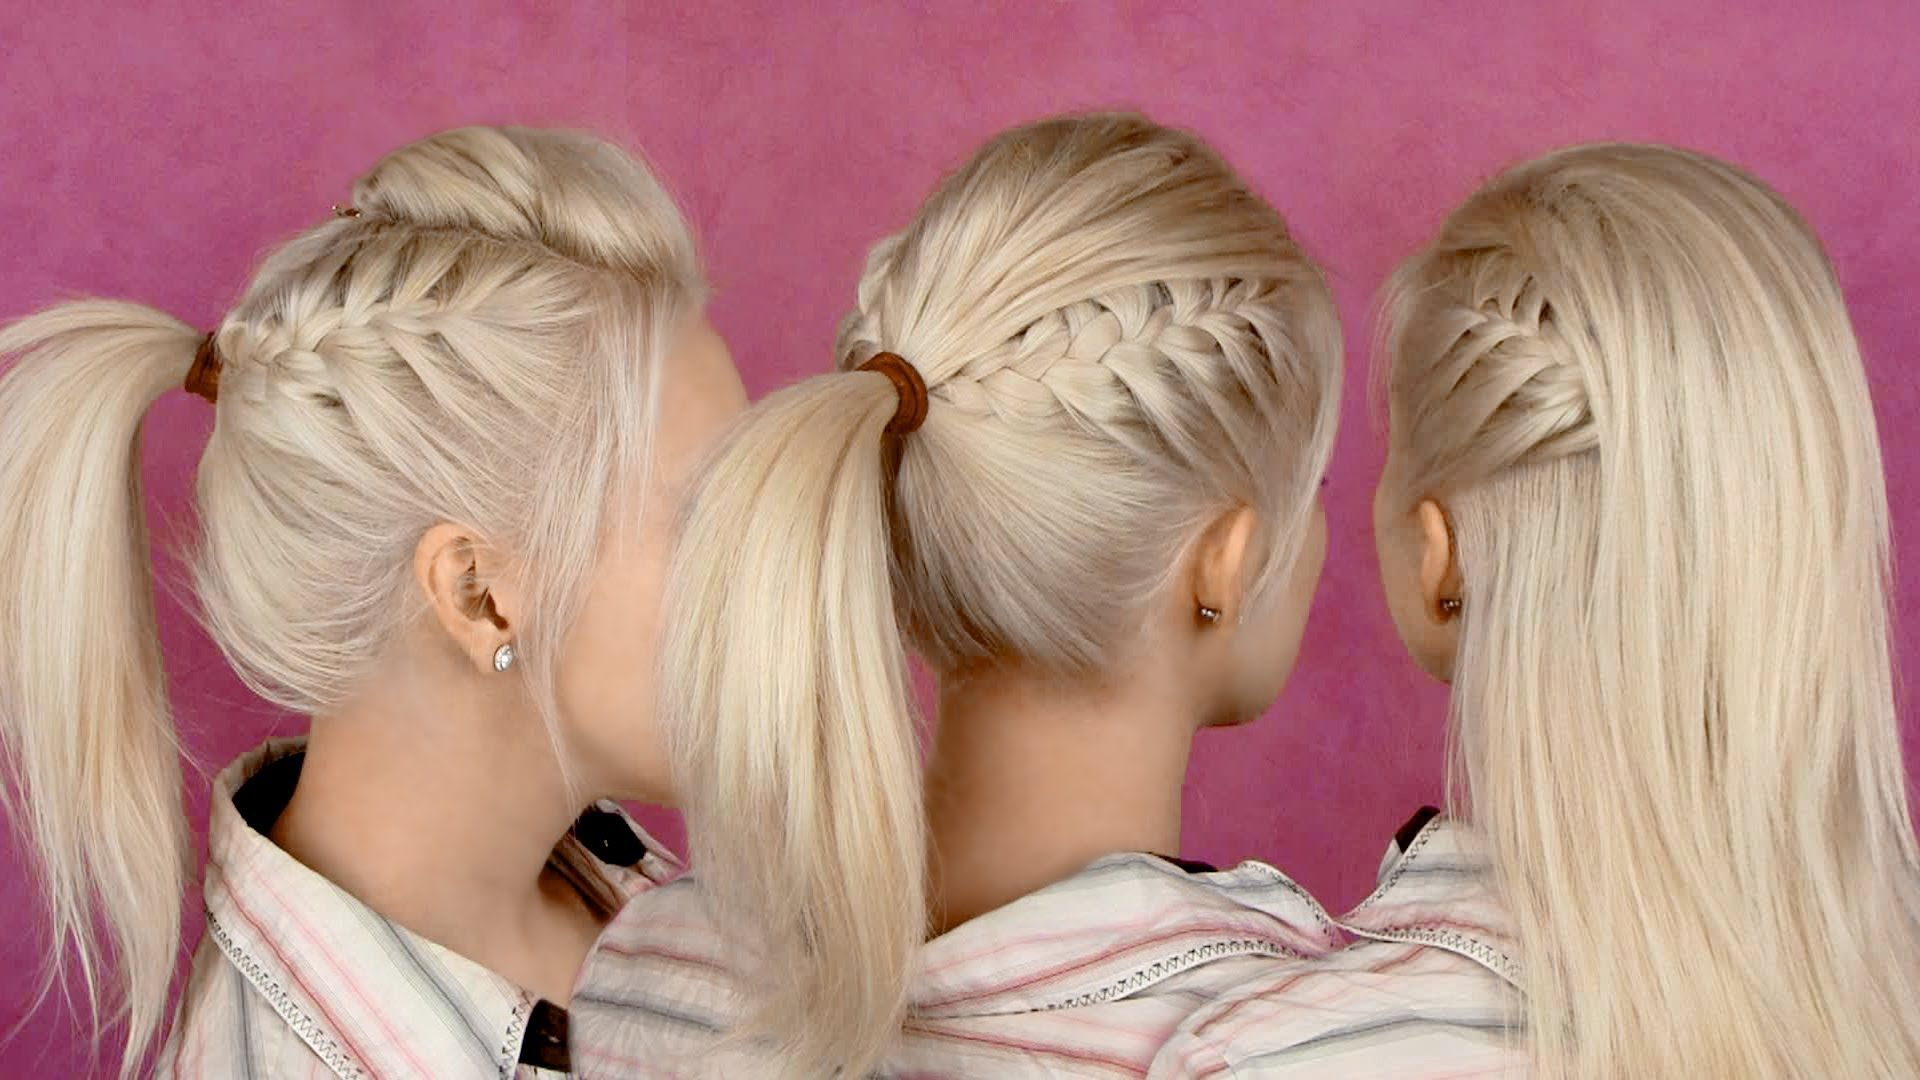 Hairstyles for party and everyday braided half updo and ponytail